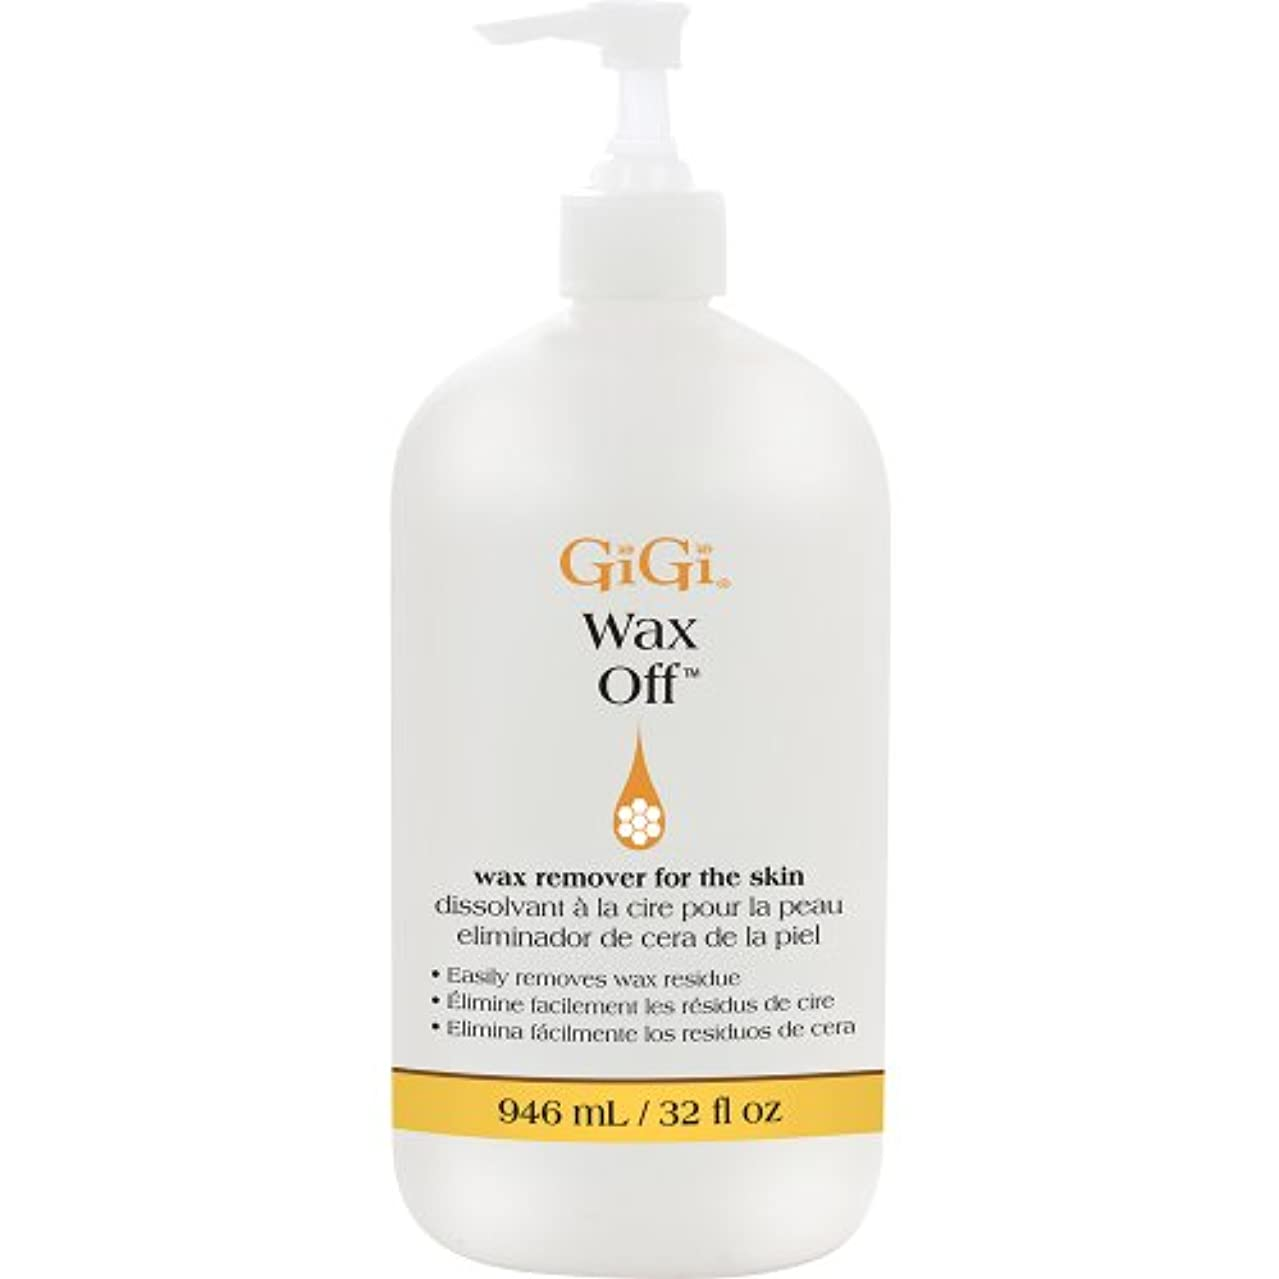 GiGi Wax Off - After Wax Remover for the Skin with Aloe Vera, 32 oz